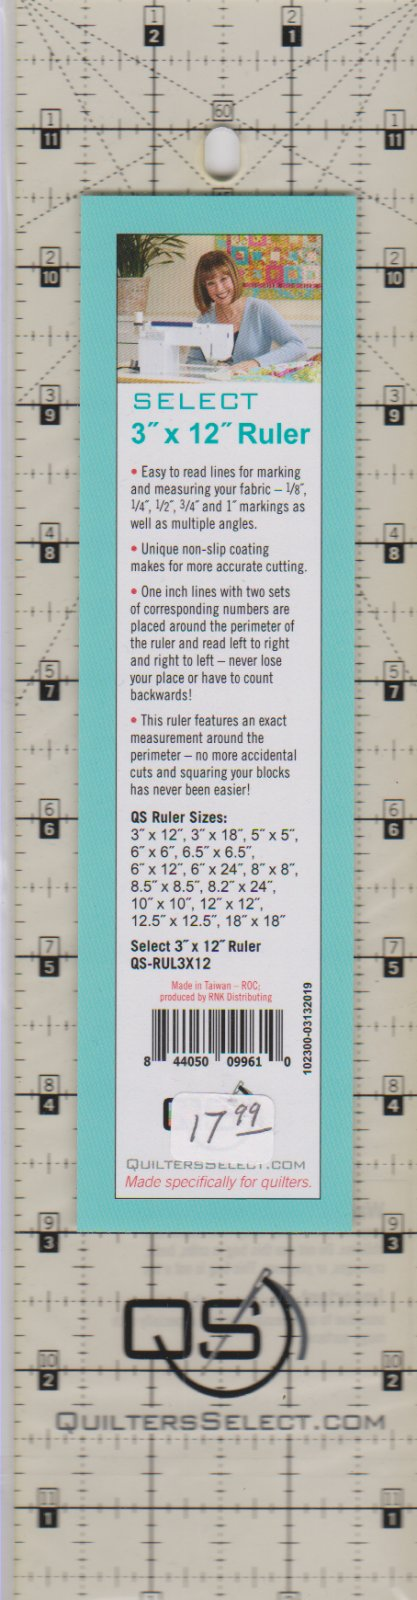 Quilters Select Ruler, 3 x 12